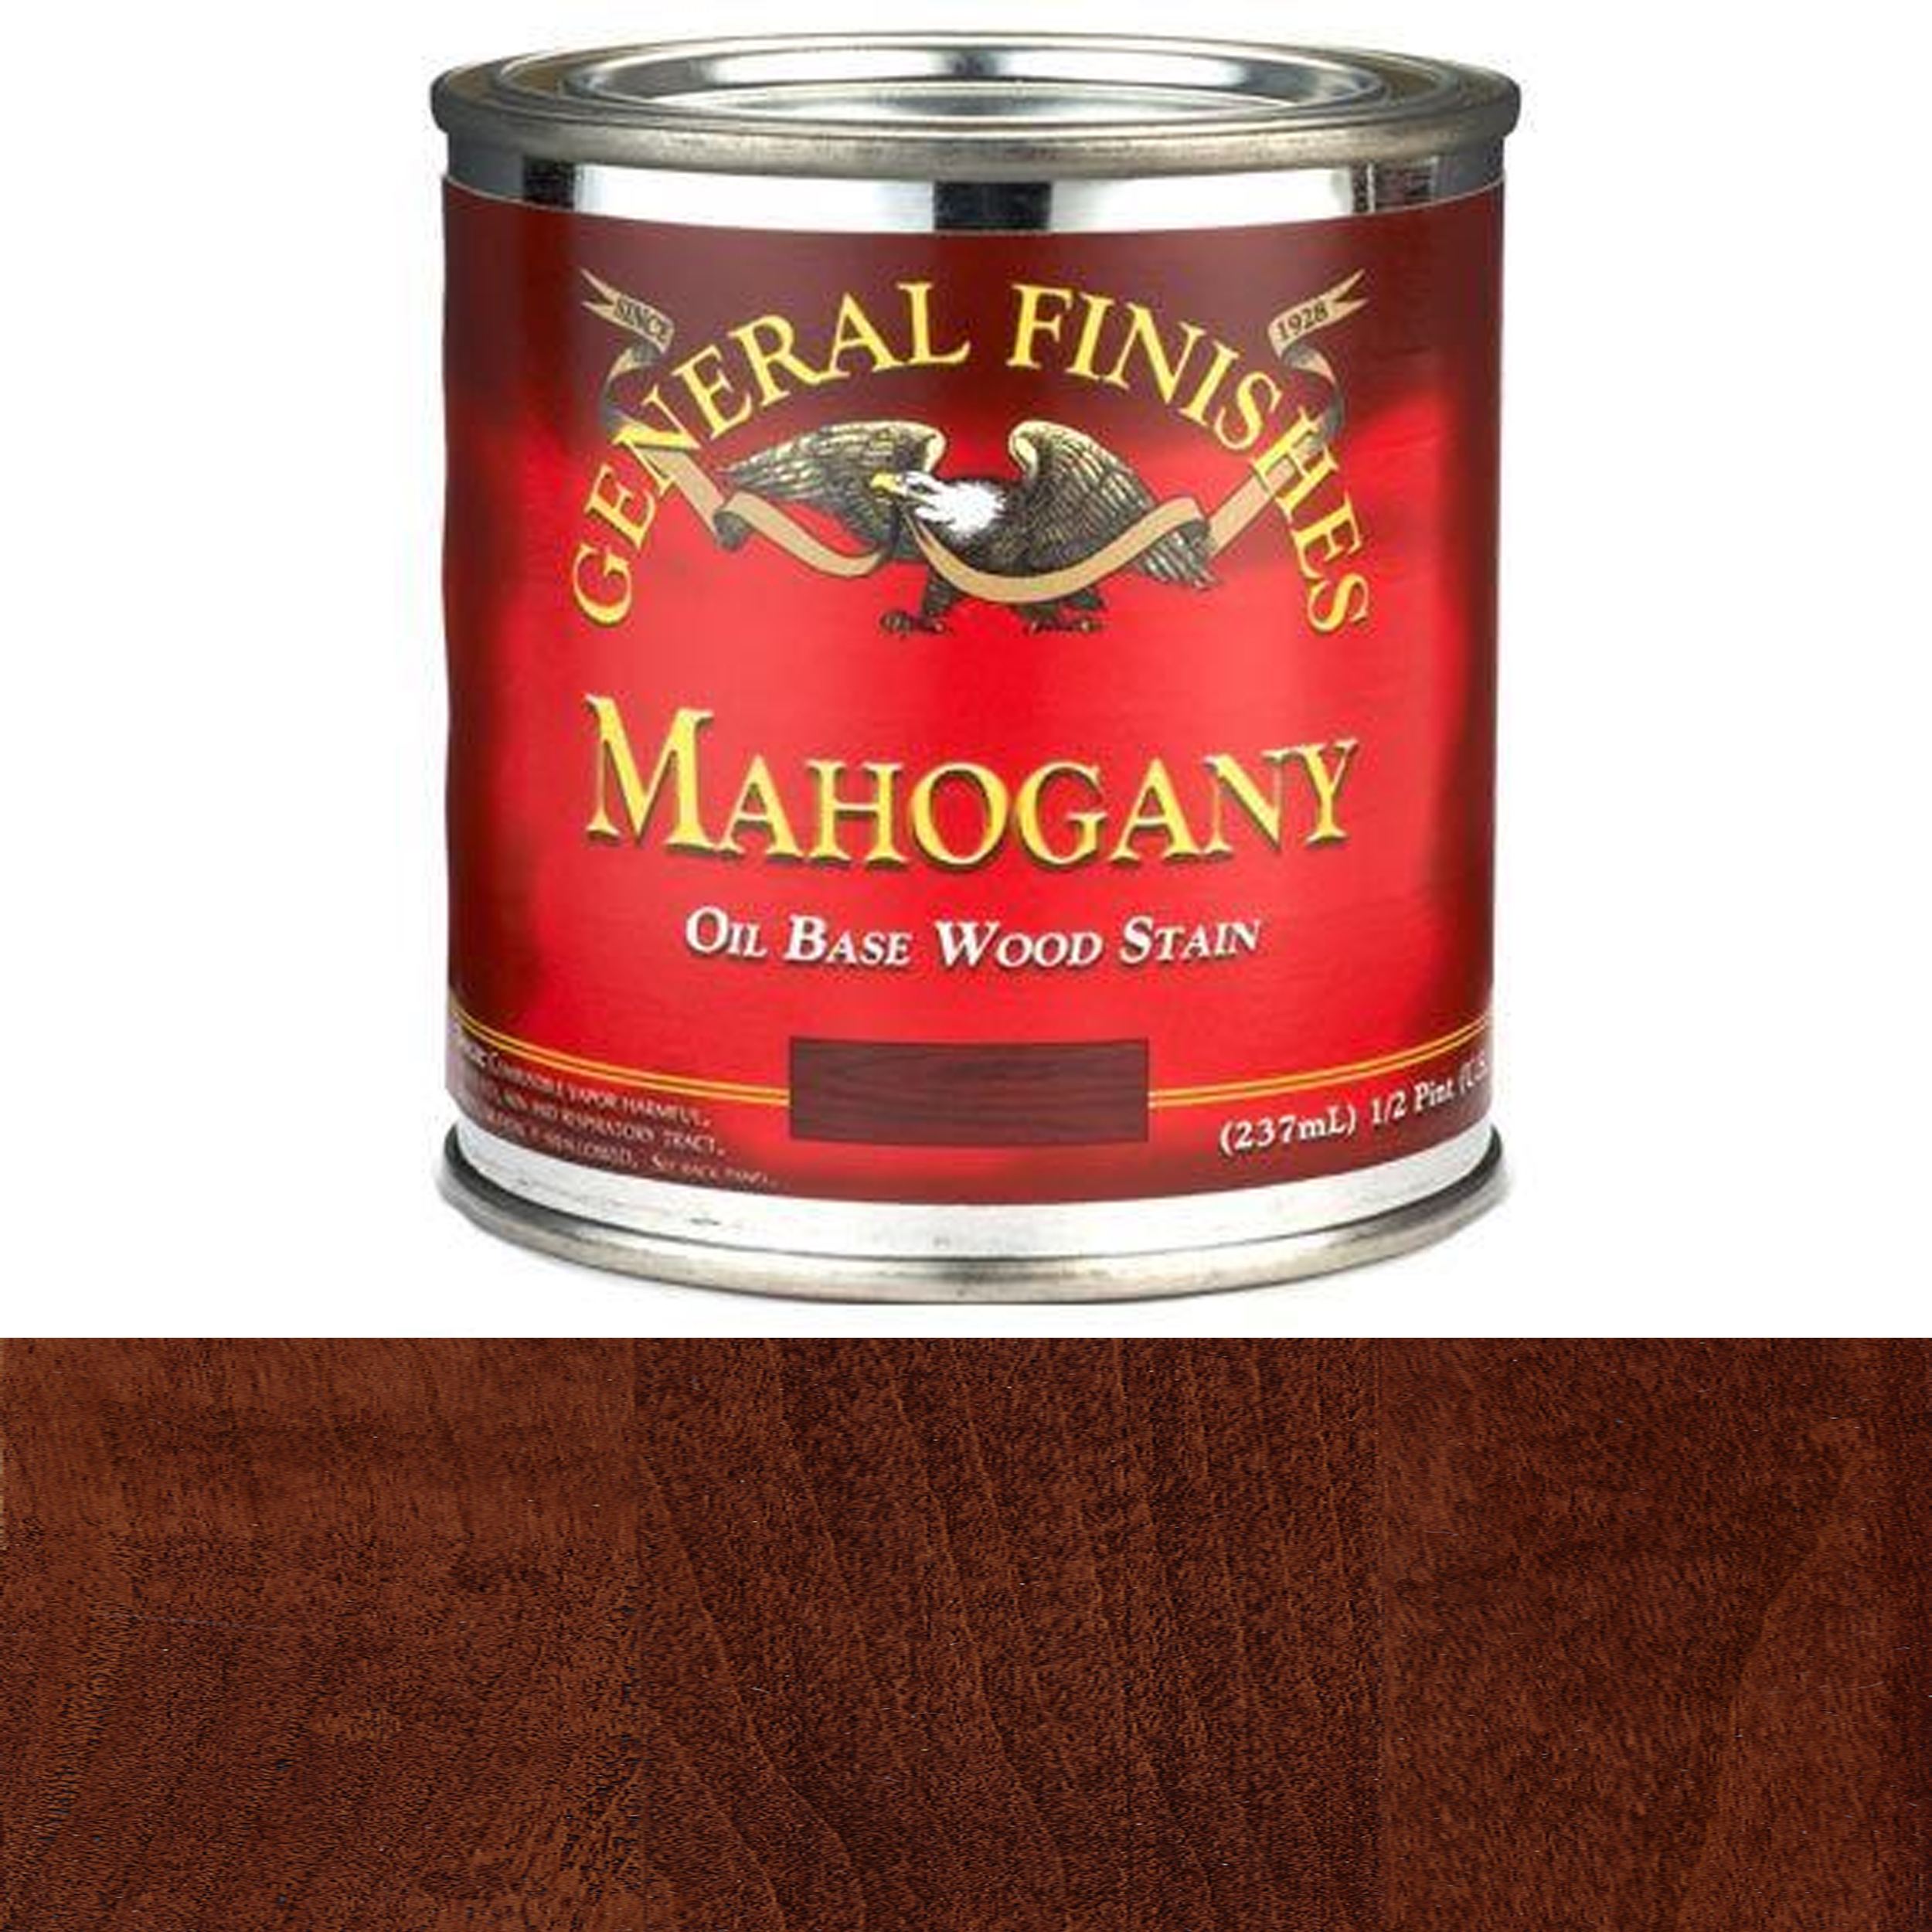 Mahogany Oil Stain, 1/2 Pint